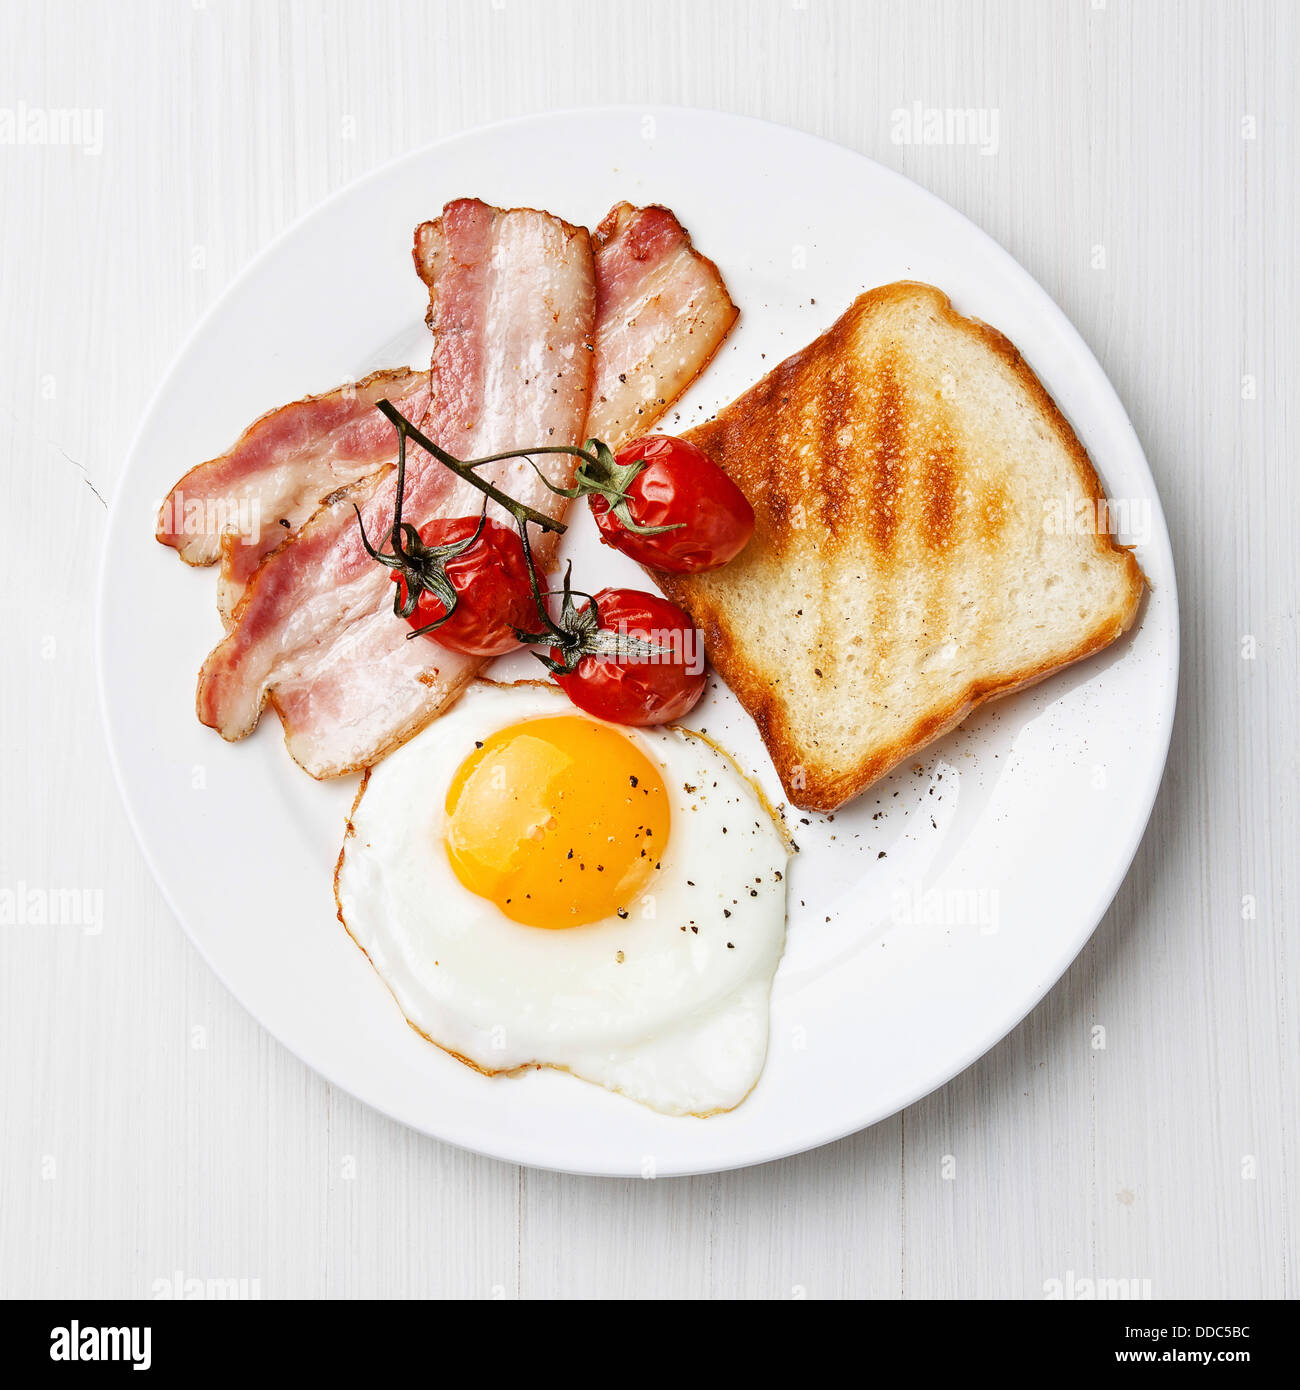 Breakfast with Fried egg and bacon on plate - Stock Image